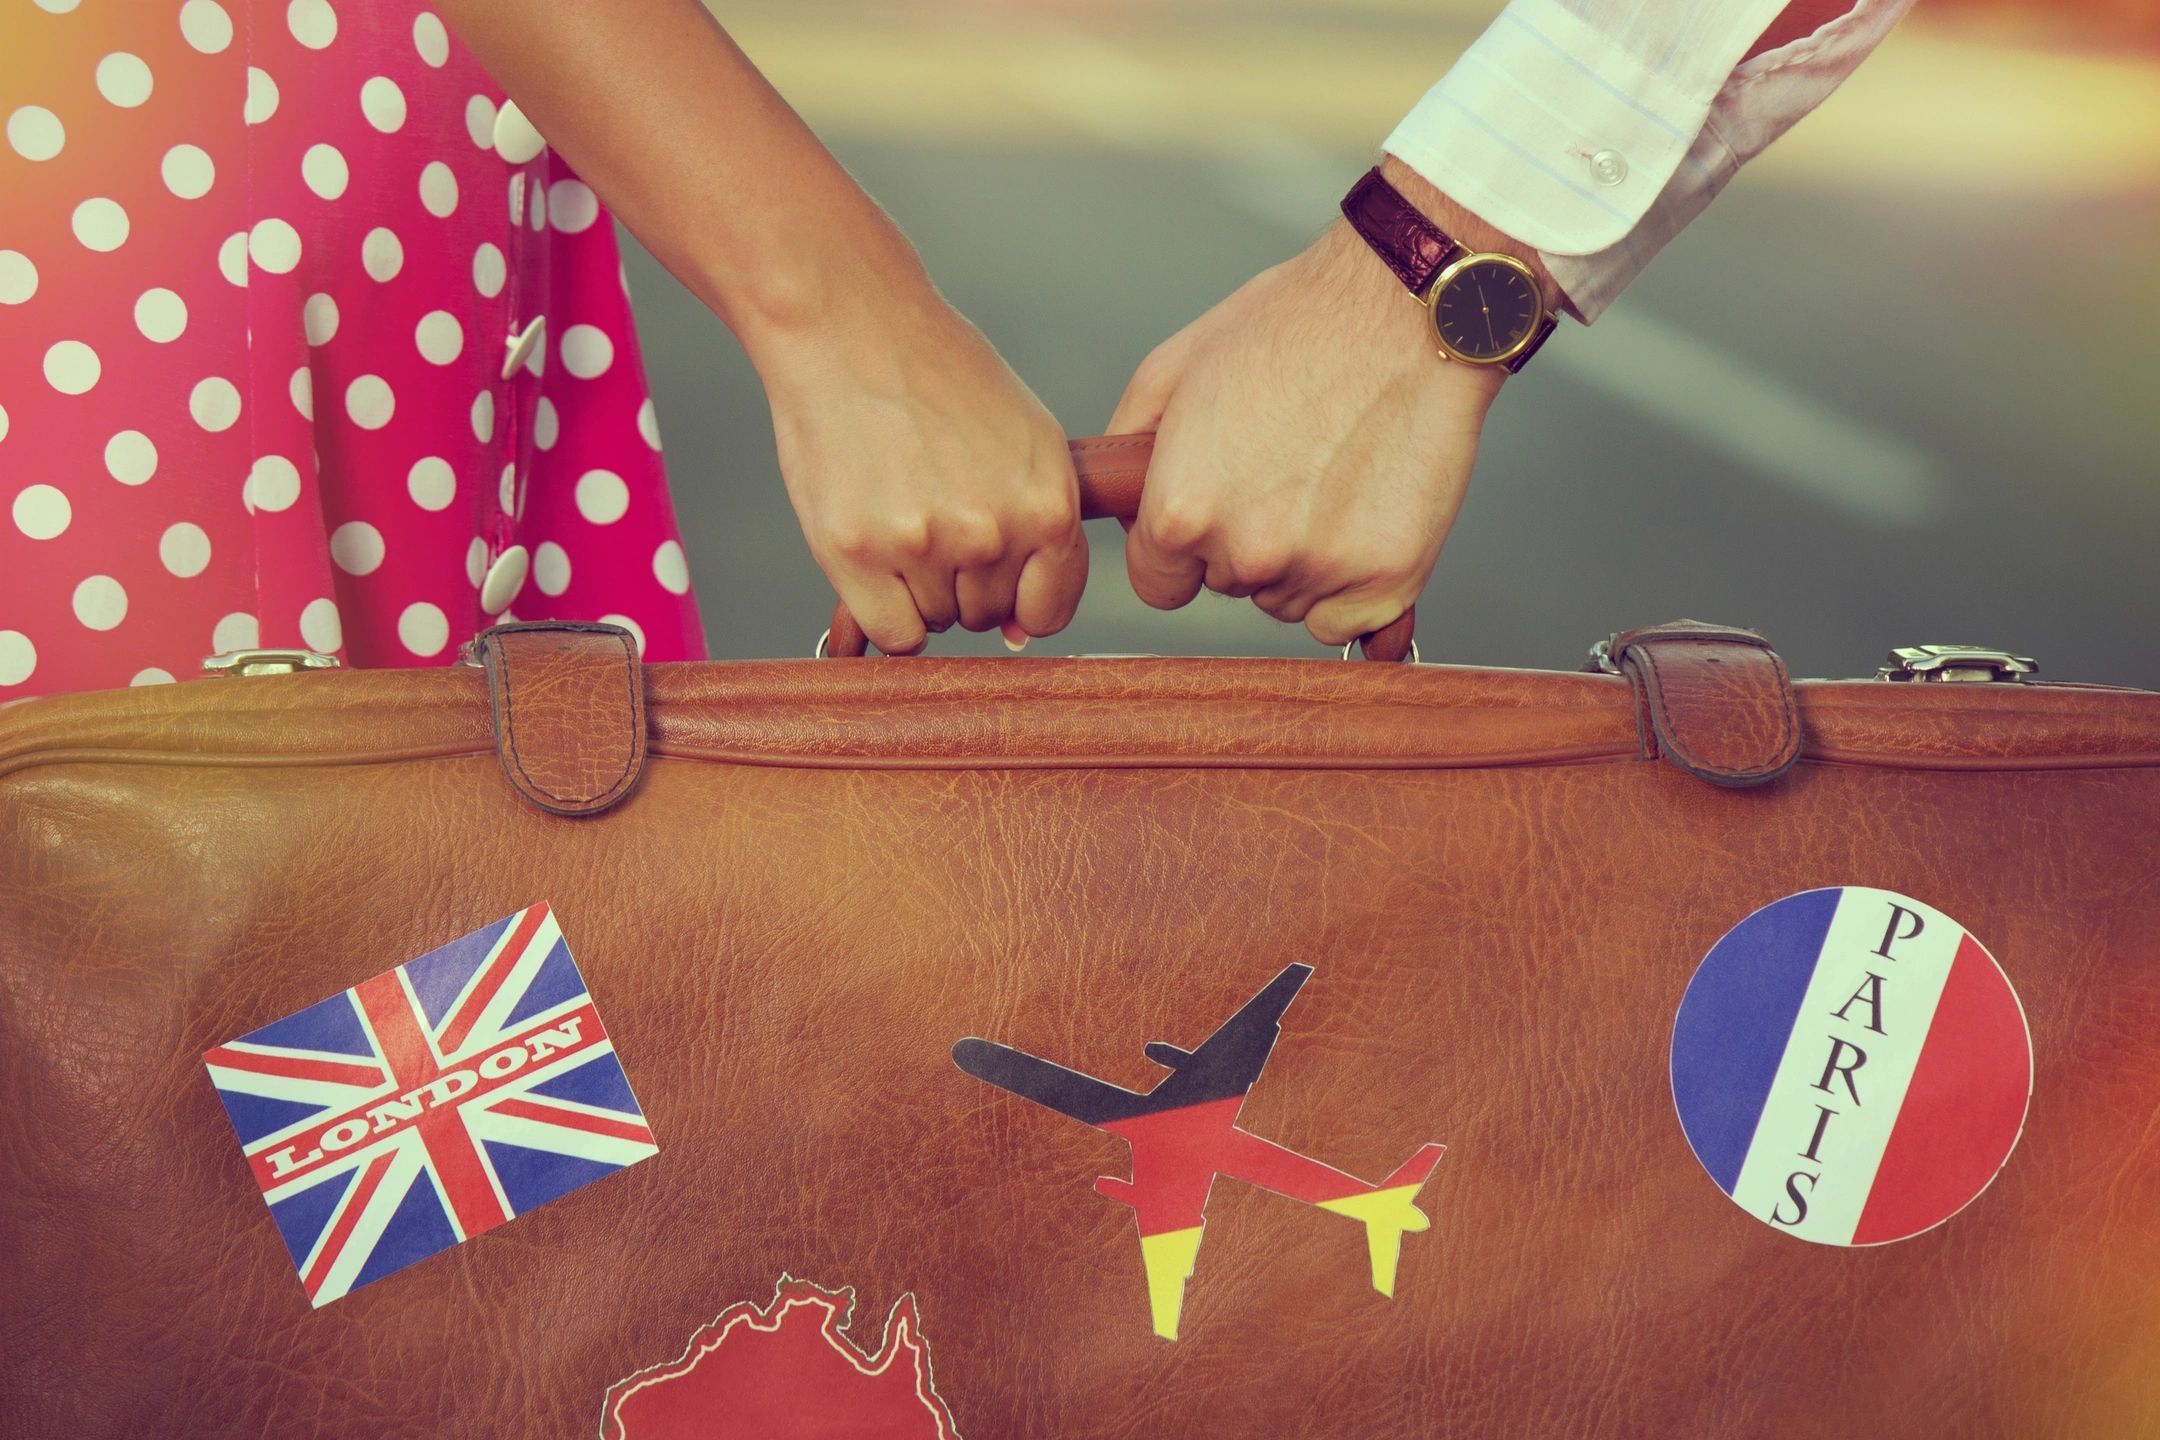 Family travel tips to lessen stress traveling with